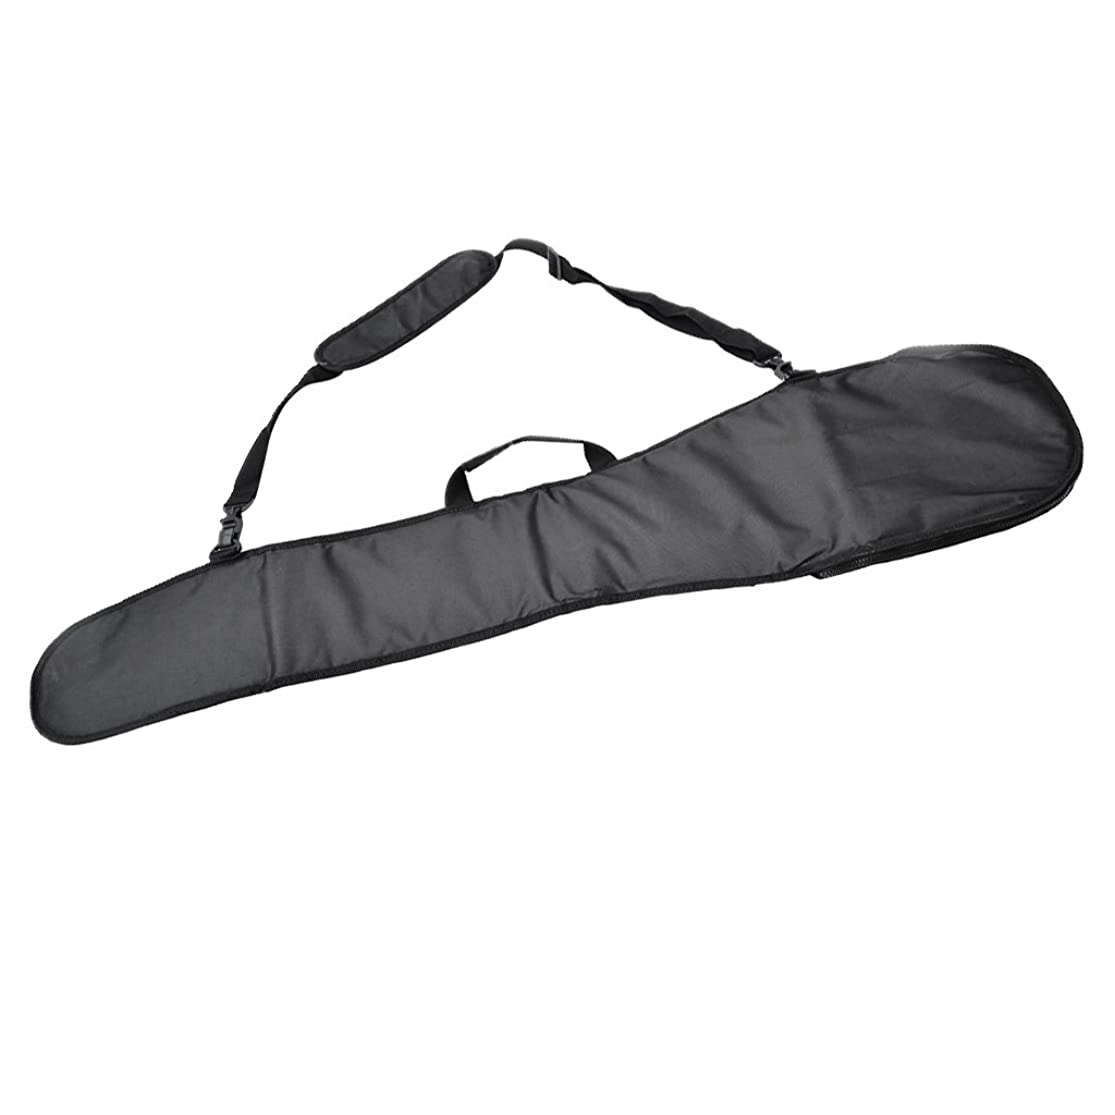 Fenteer Deluxe Padded SUP Kayak Boat Canoe Paddle Storage Bag Pouch Cover Split Kayak Paddle Bag with Carry Handle & Shoulder Strap bcxlvfzy6